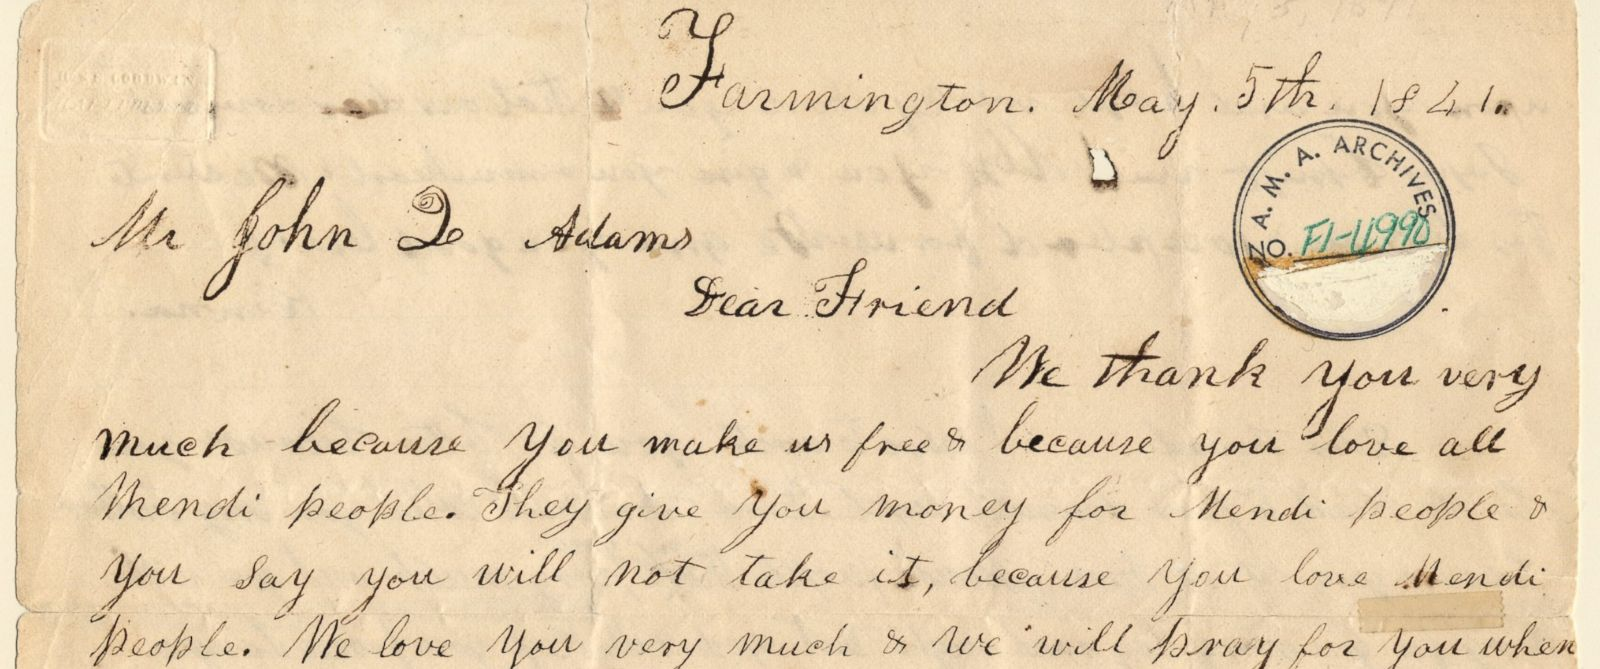 PHOTO: A handwritten thank you note written by freed slaves to former President John Quincy Adams has been republished ahead of the 175th anniversary of the Amistad rebellion.